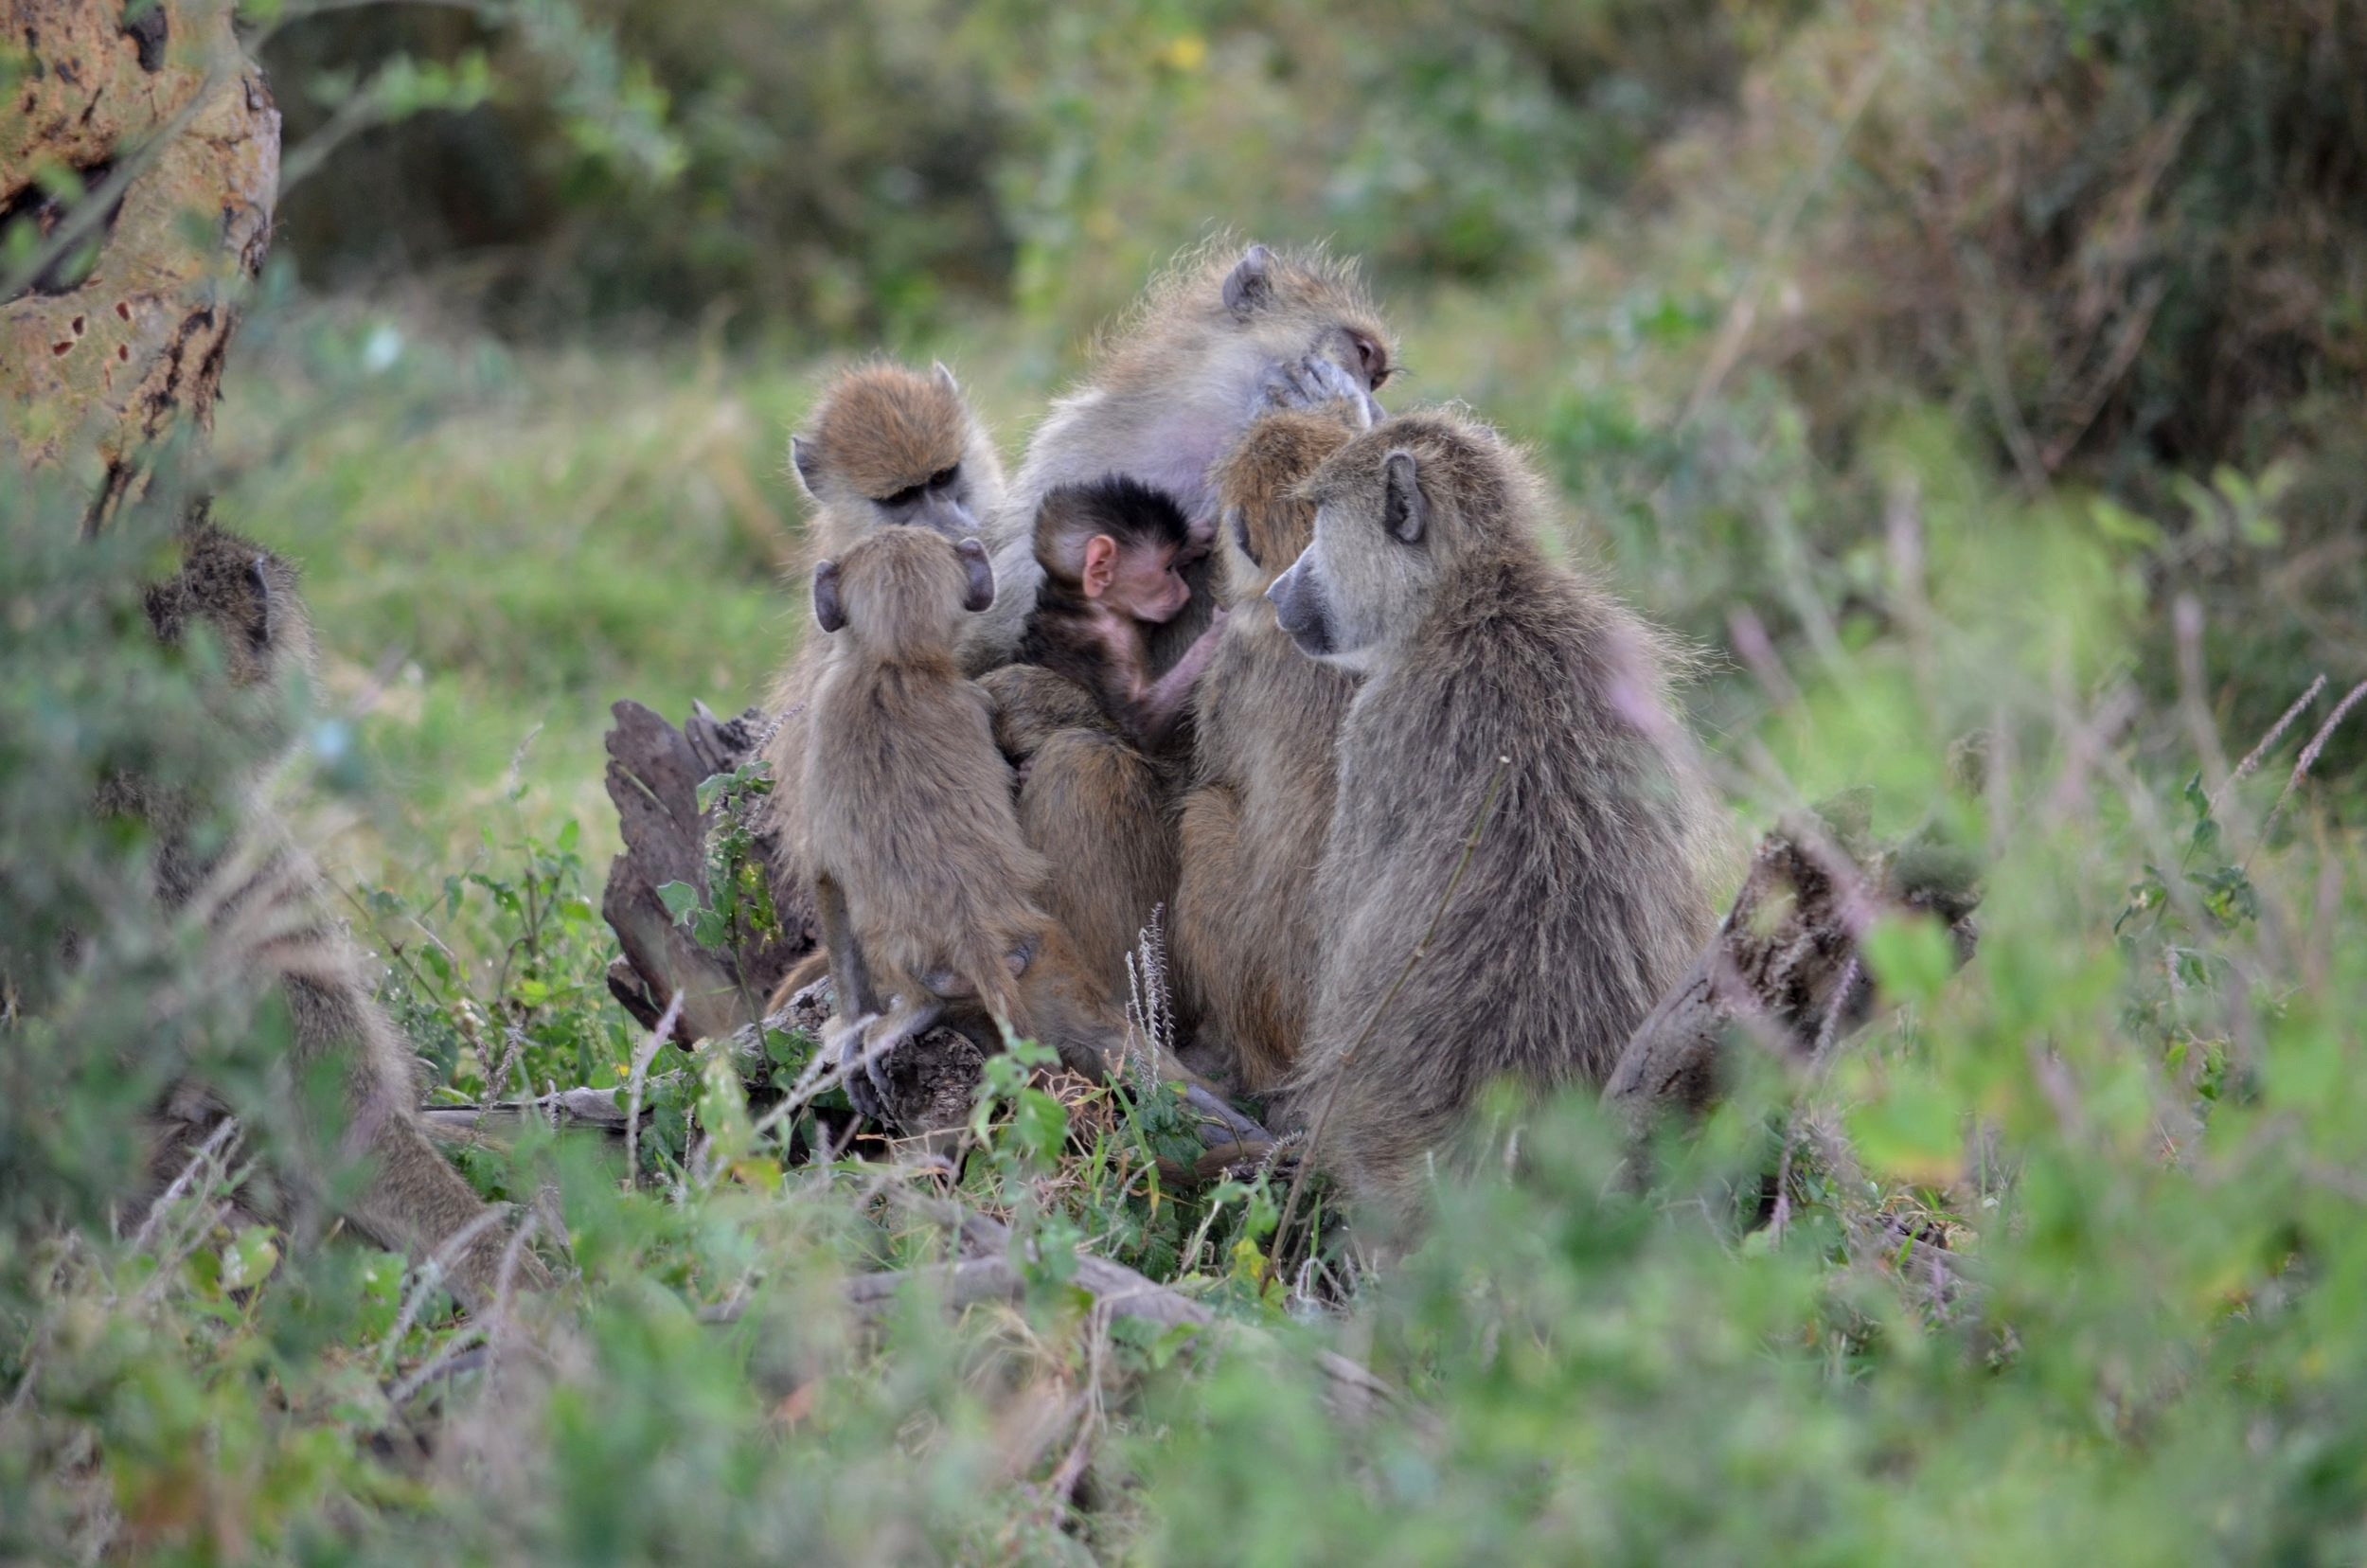 A group of baboons surrounding a very young infant baboons.